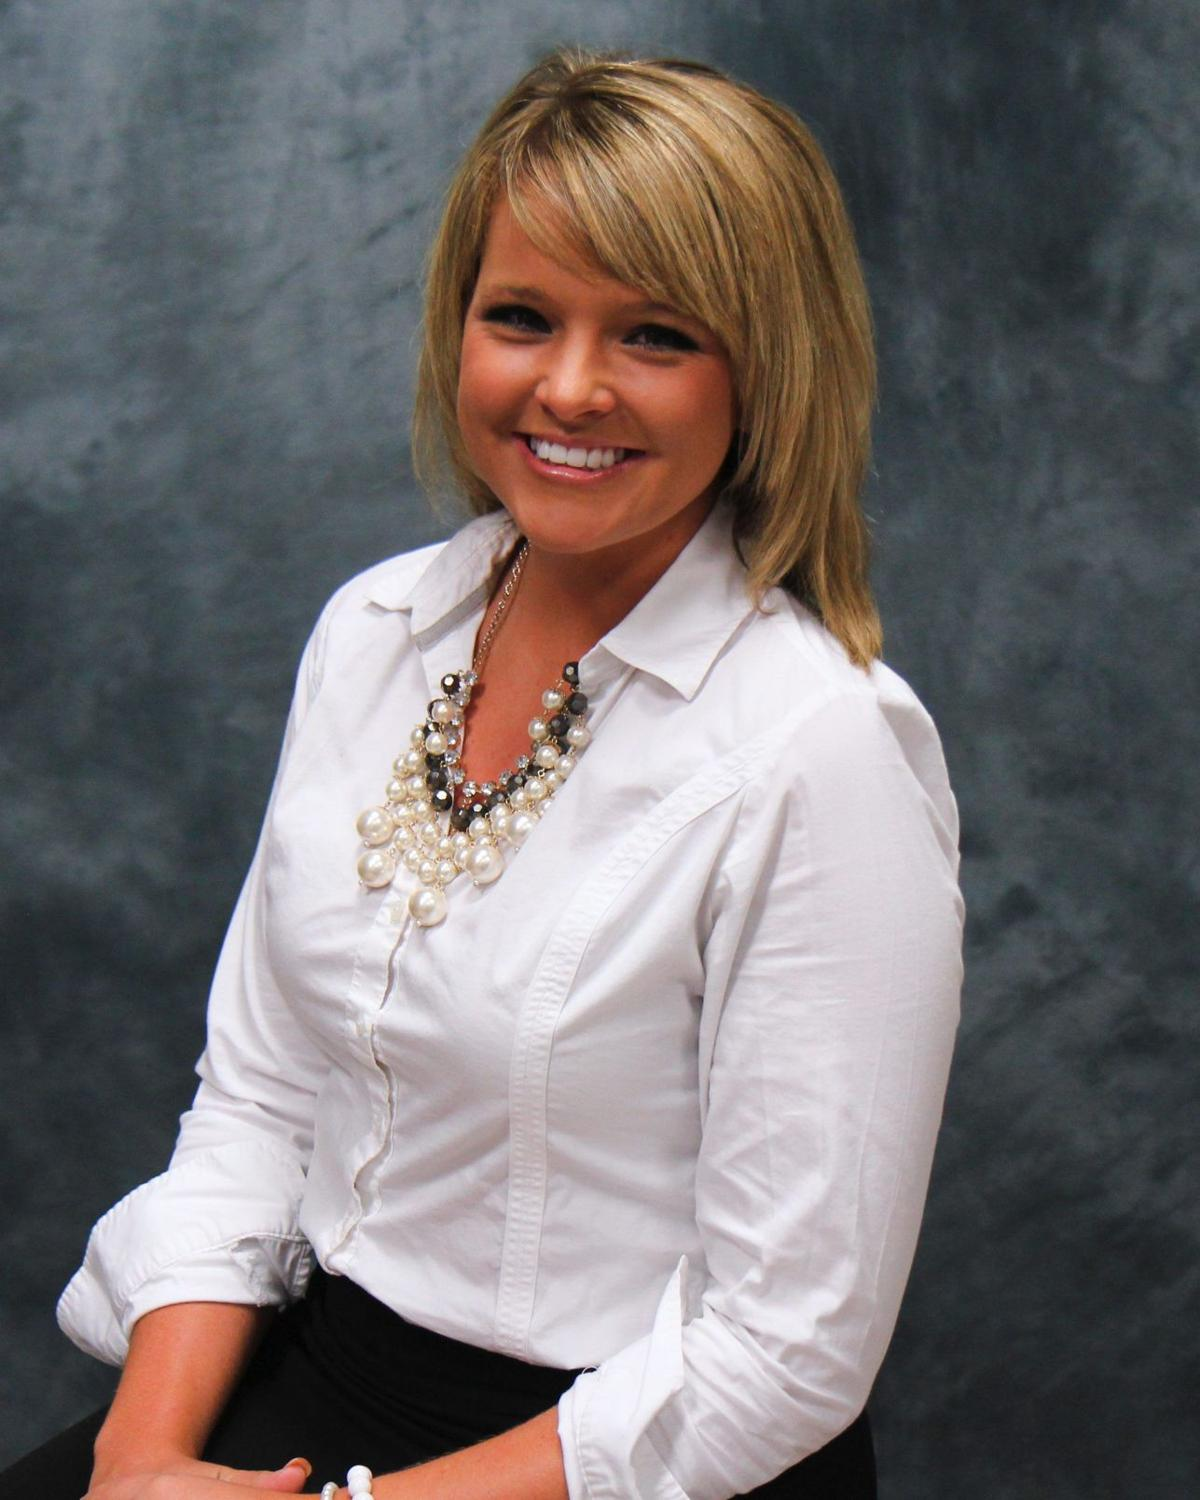 Business and professional briefs, Sept. 7, 2014